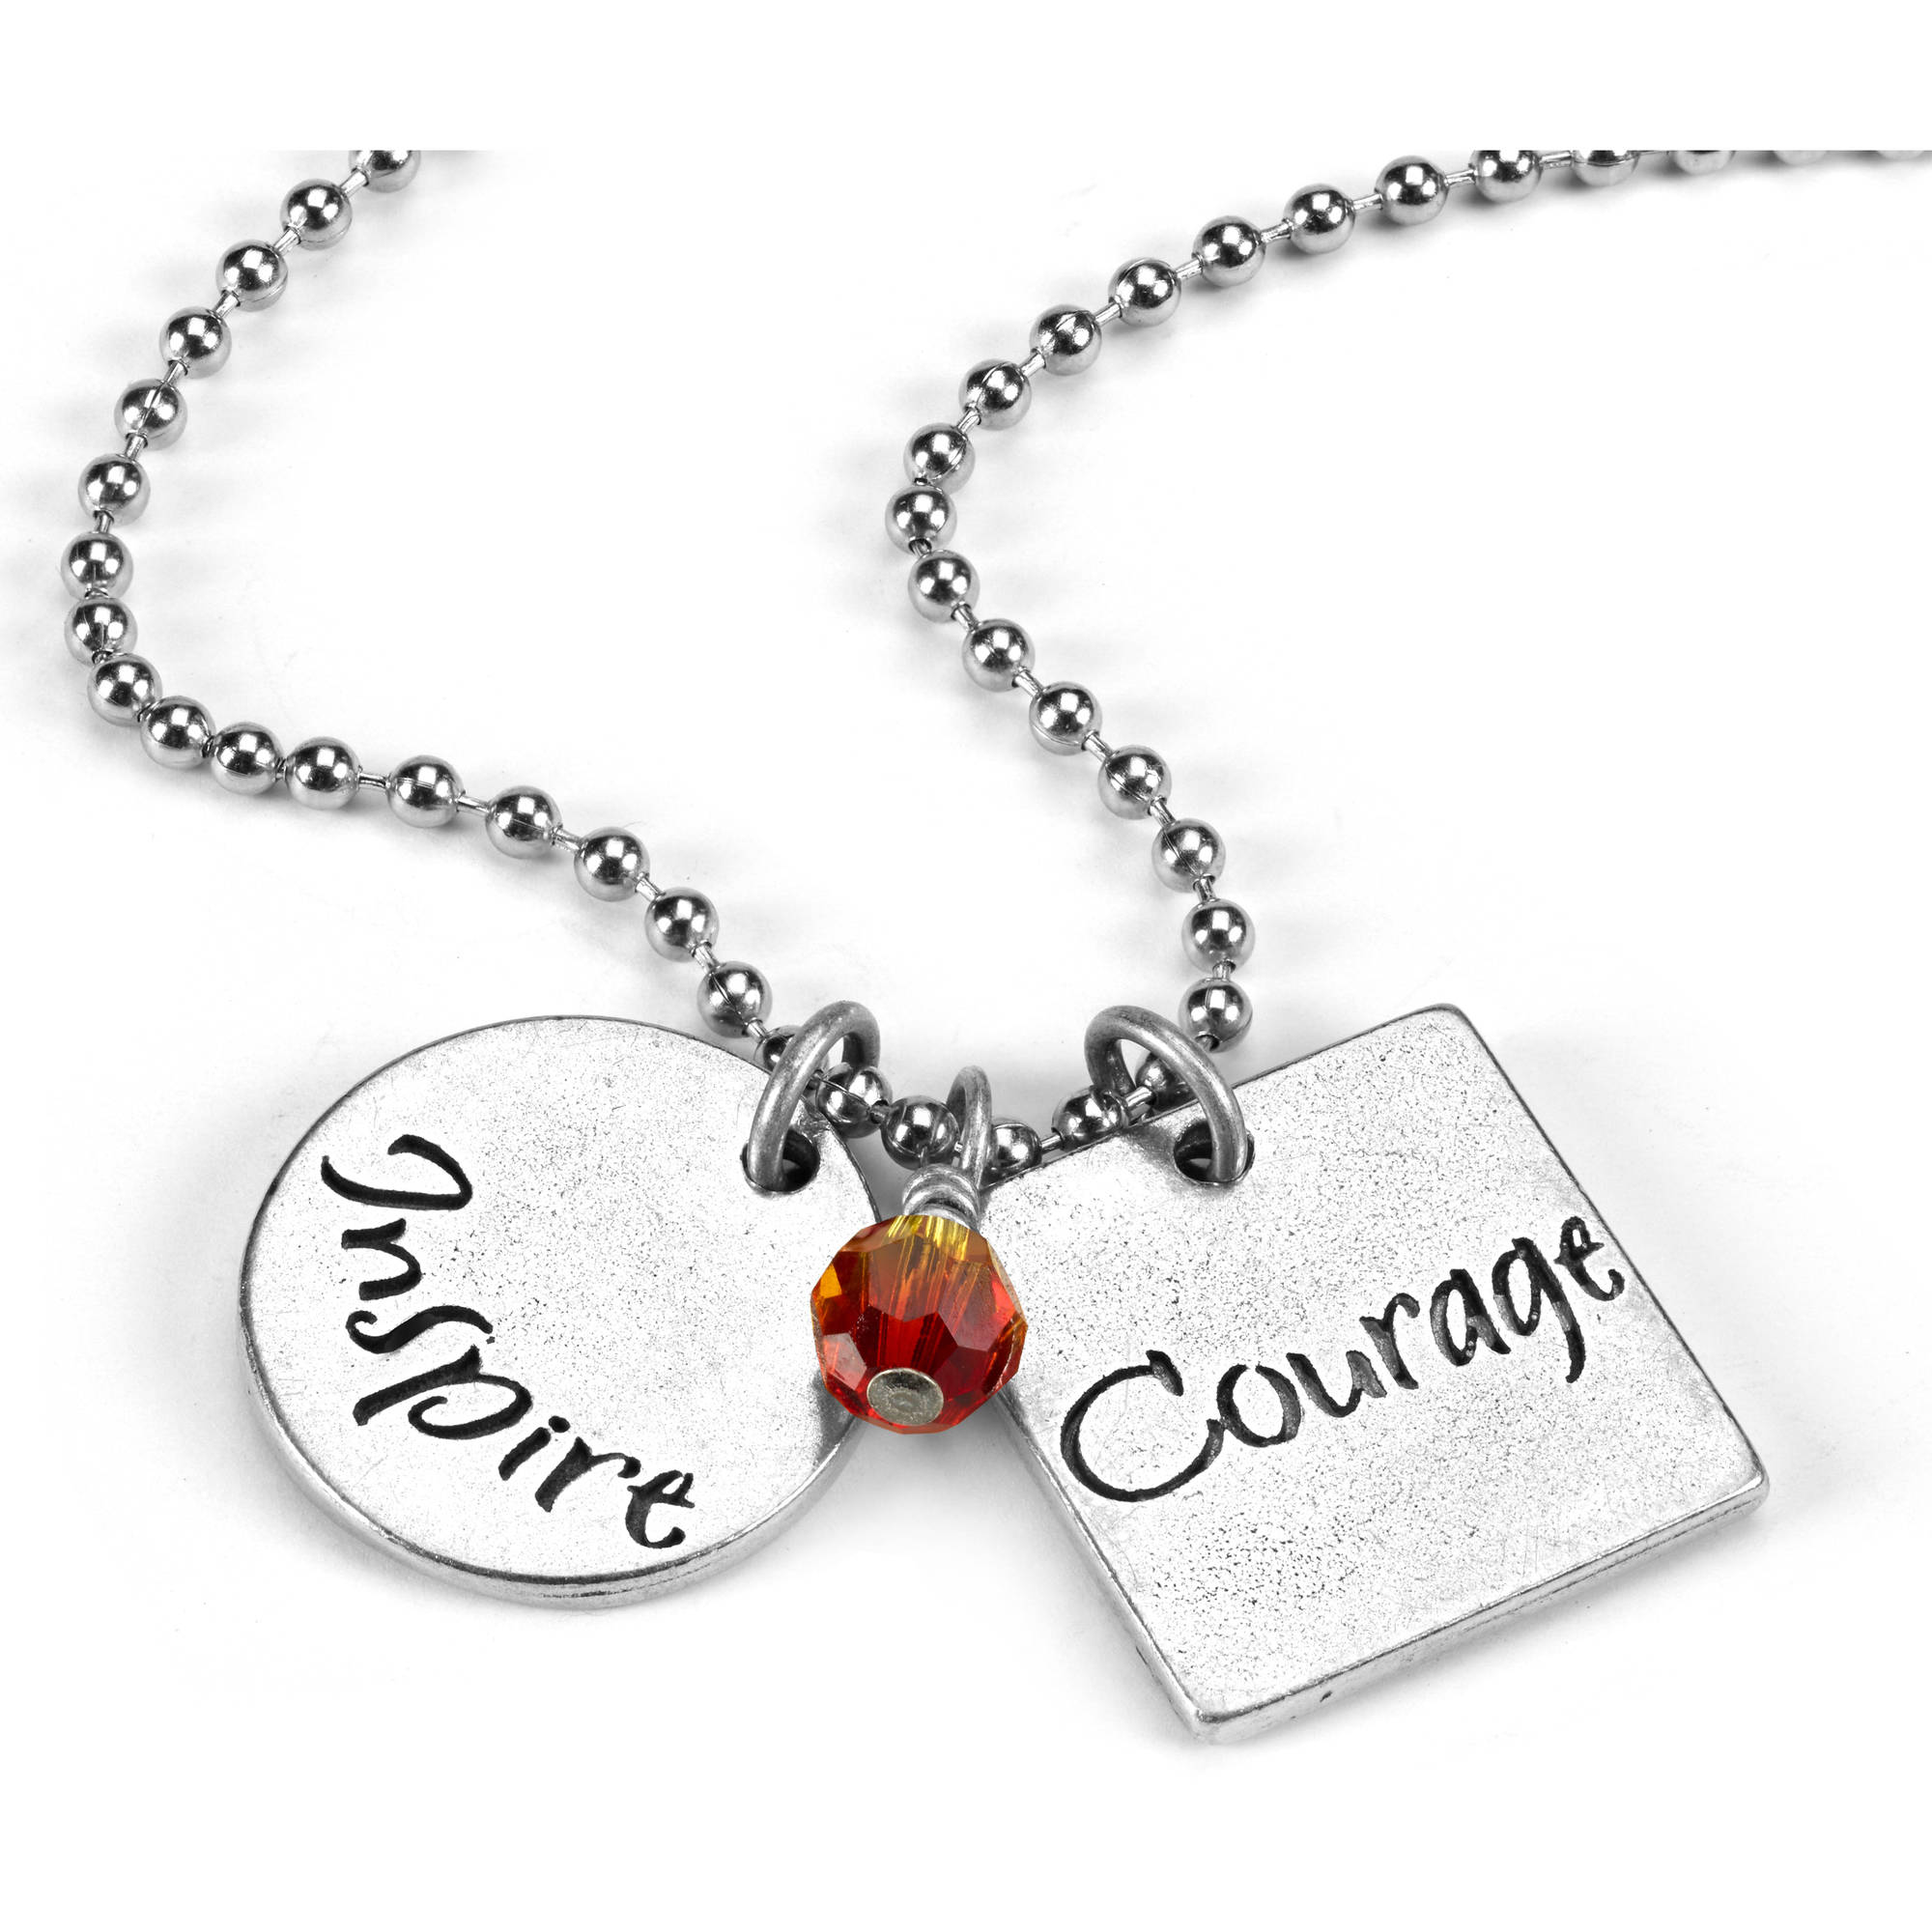 Inspirational Silver Tone Necklace by Women's Bean Project